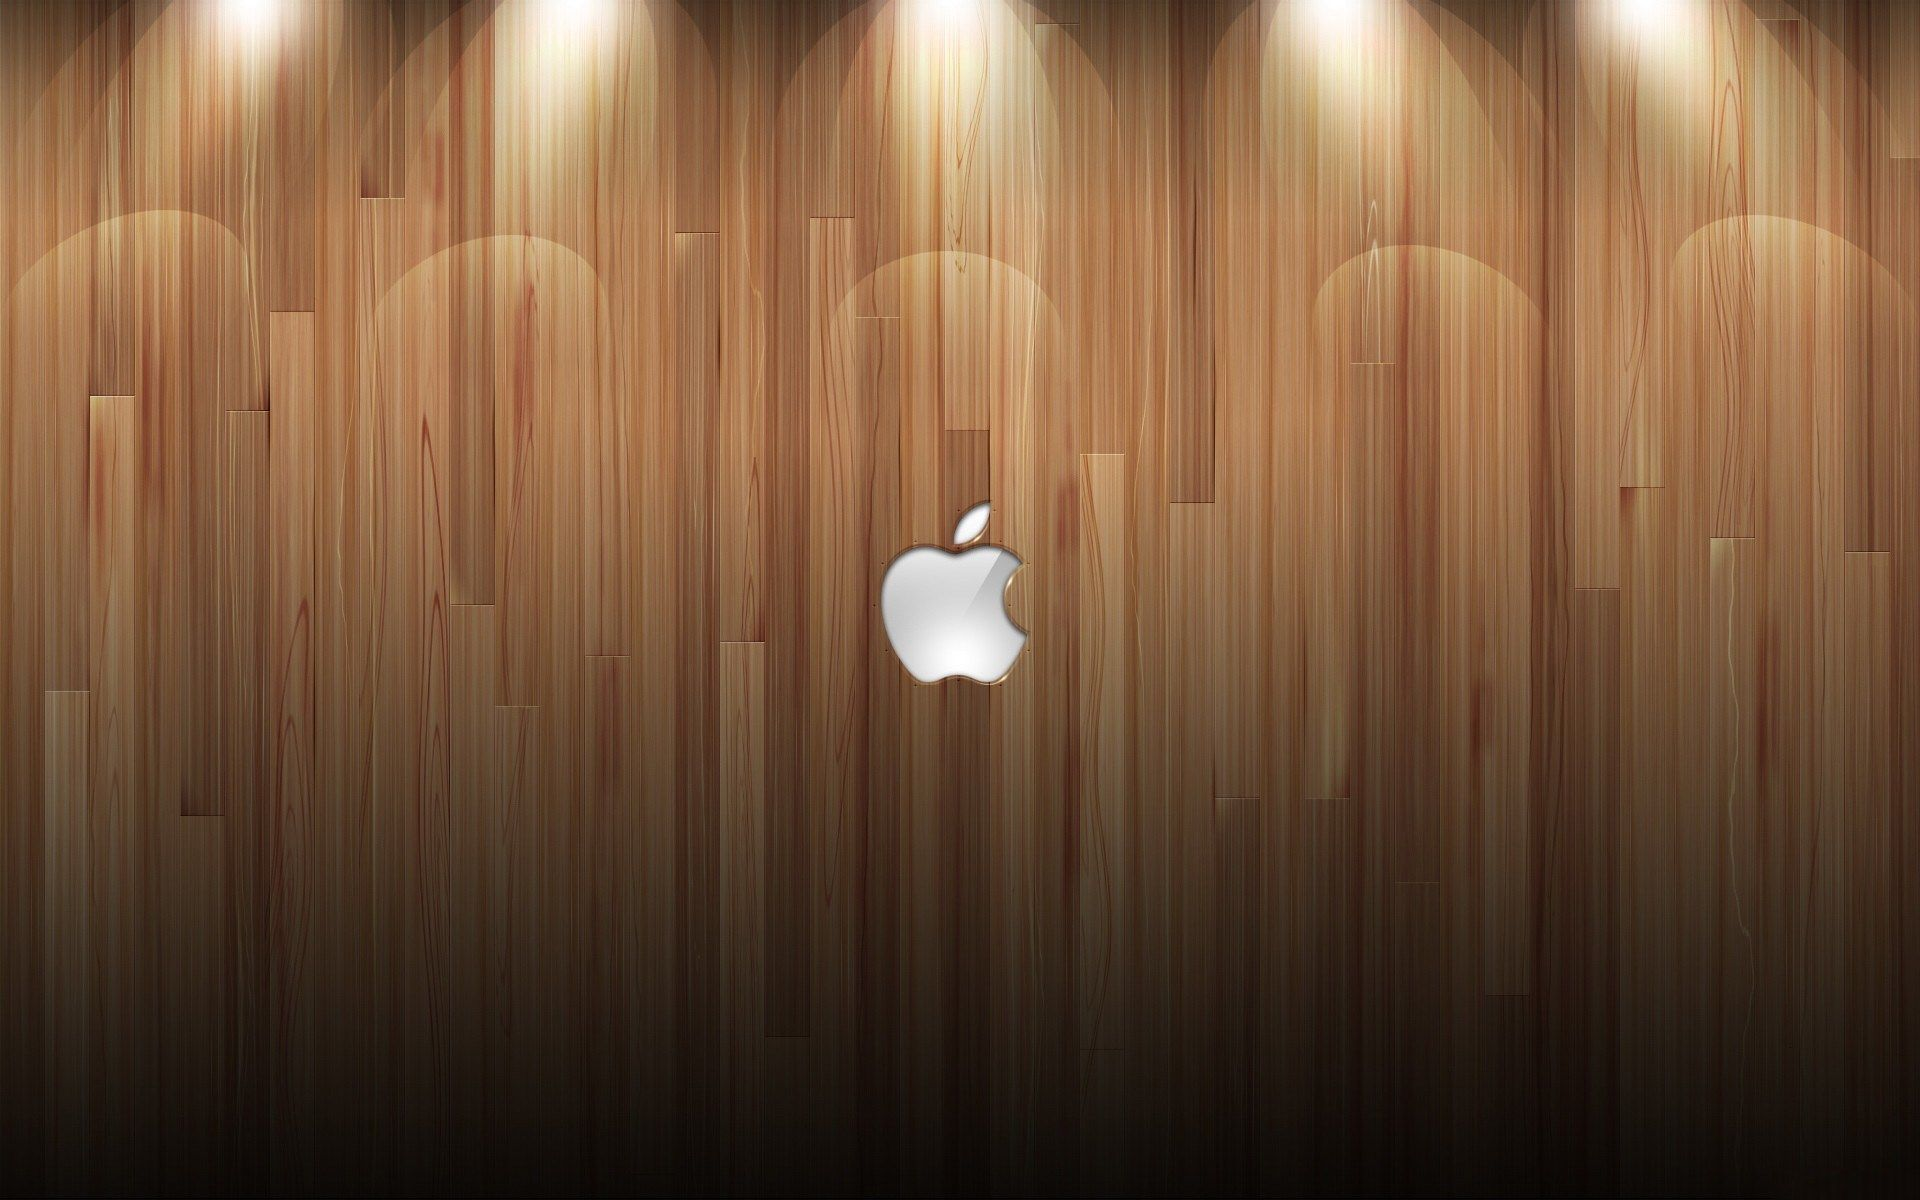 Apple Logo Wood Background Lights Desktop Wallpaper